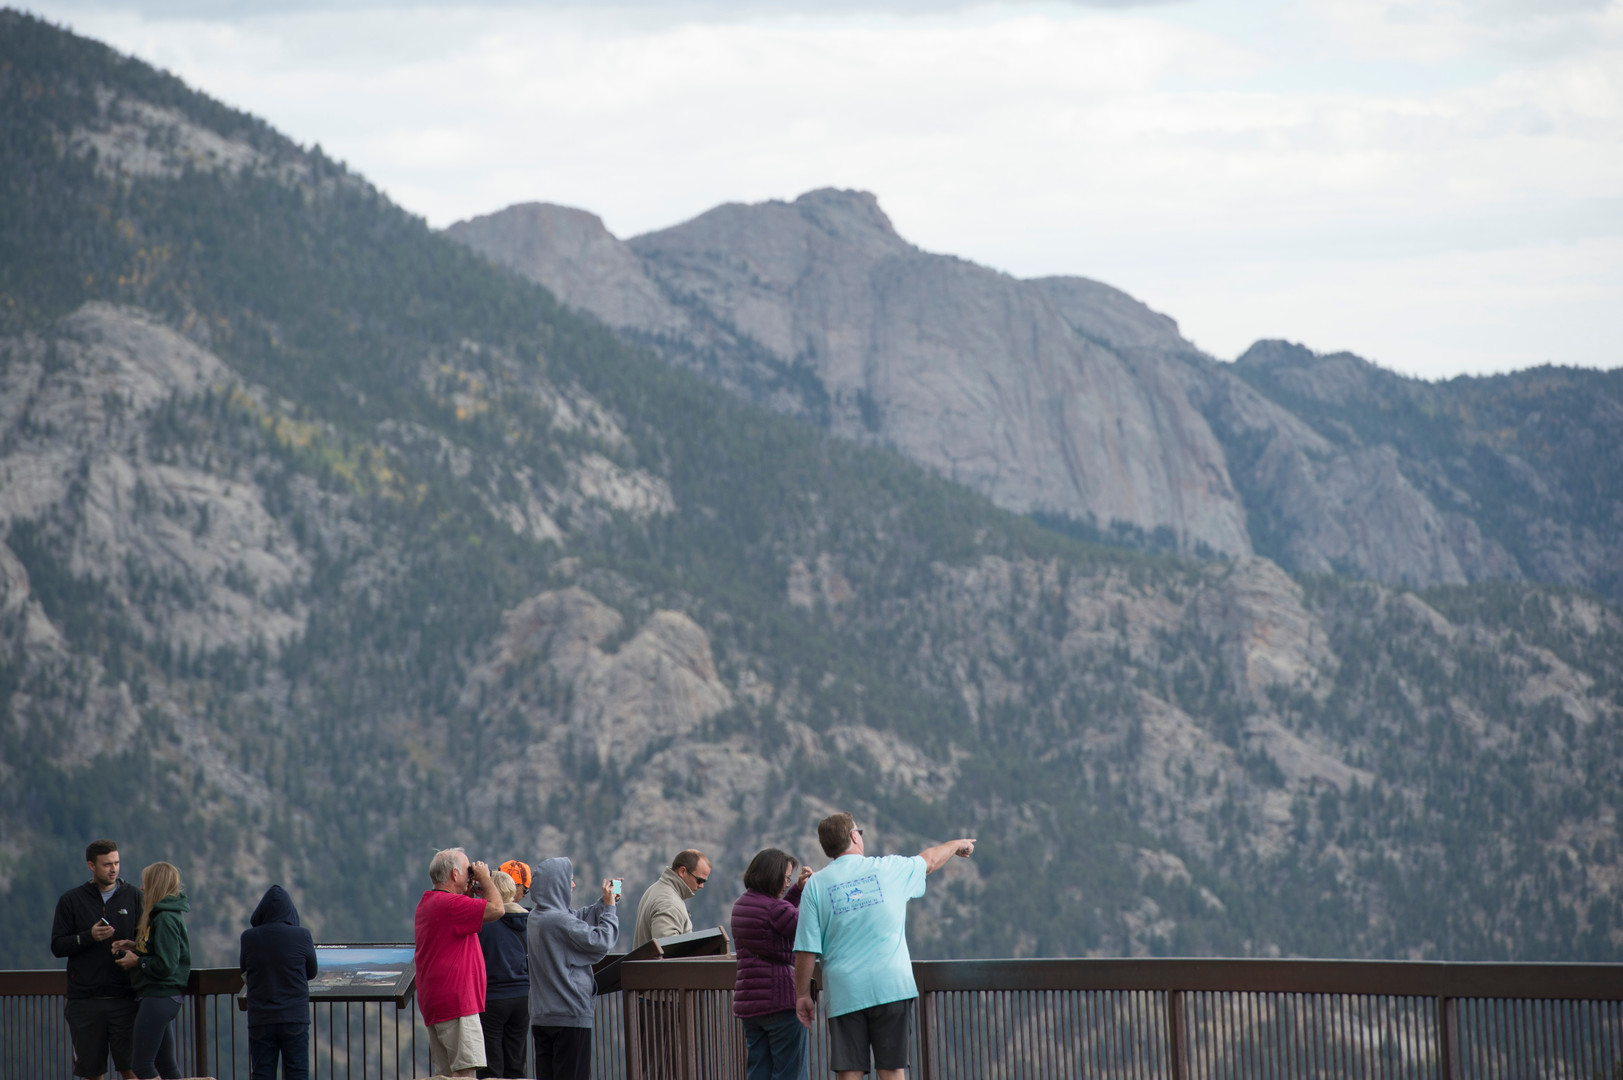 Visitors take in the view from the Many Parks Curve boardwalk in Rocky Mountain National Park Thursday, September 17, 2015.